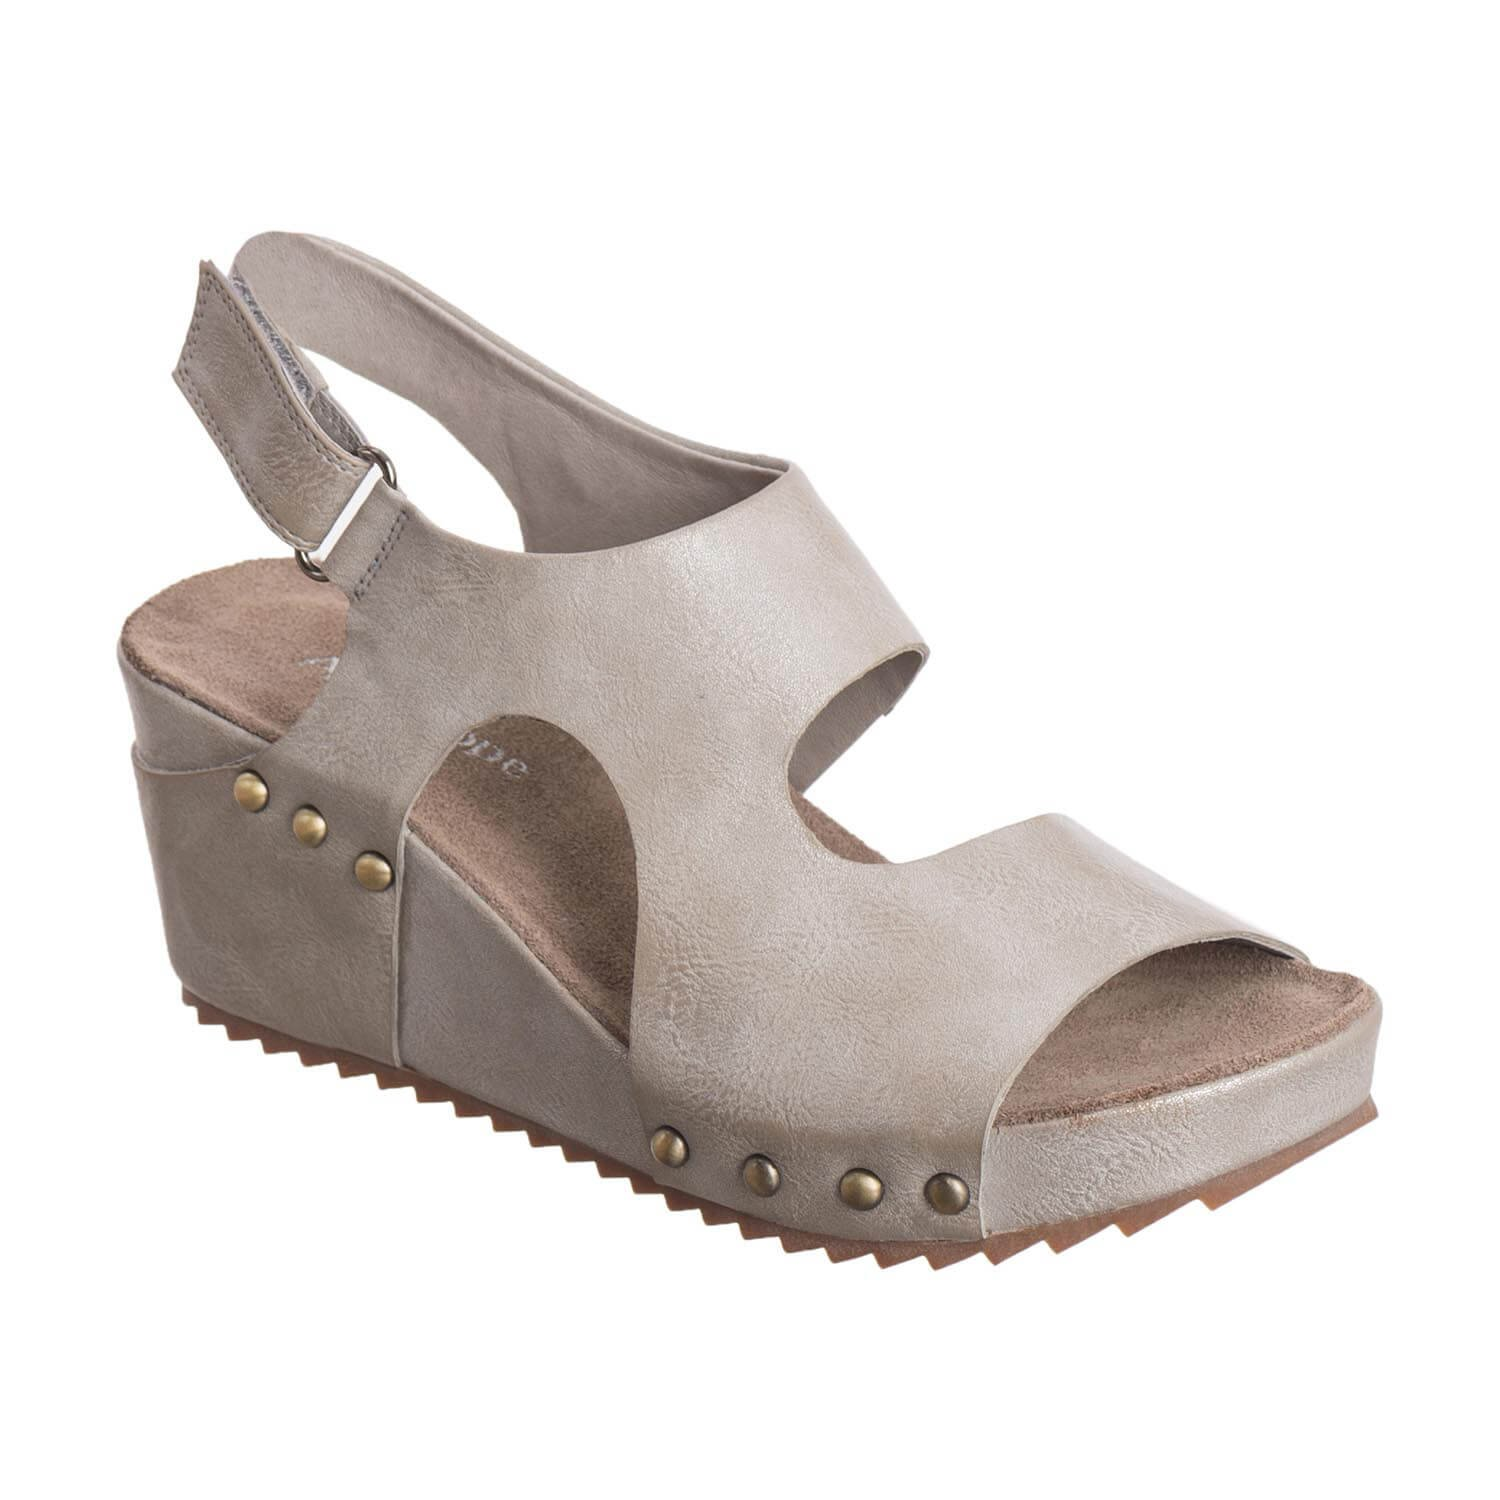 Antelope Women's 537 Metallic Leather Side Cut Wedge B079G2YM4Z 6 B(M) US / 37 EU|Grey